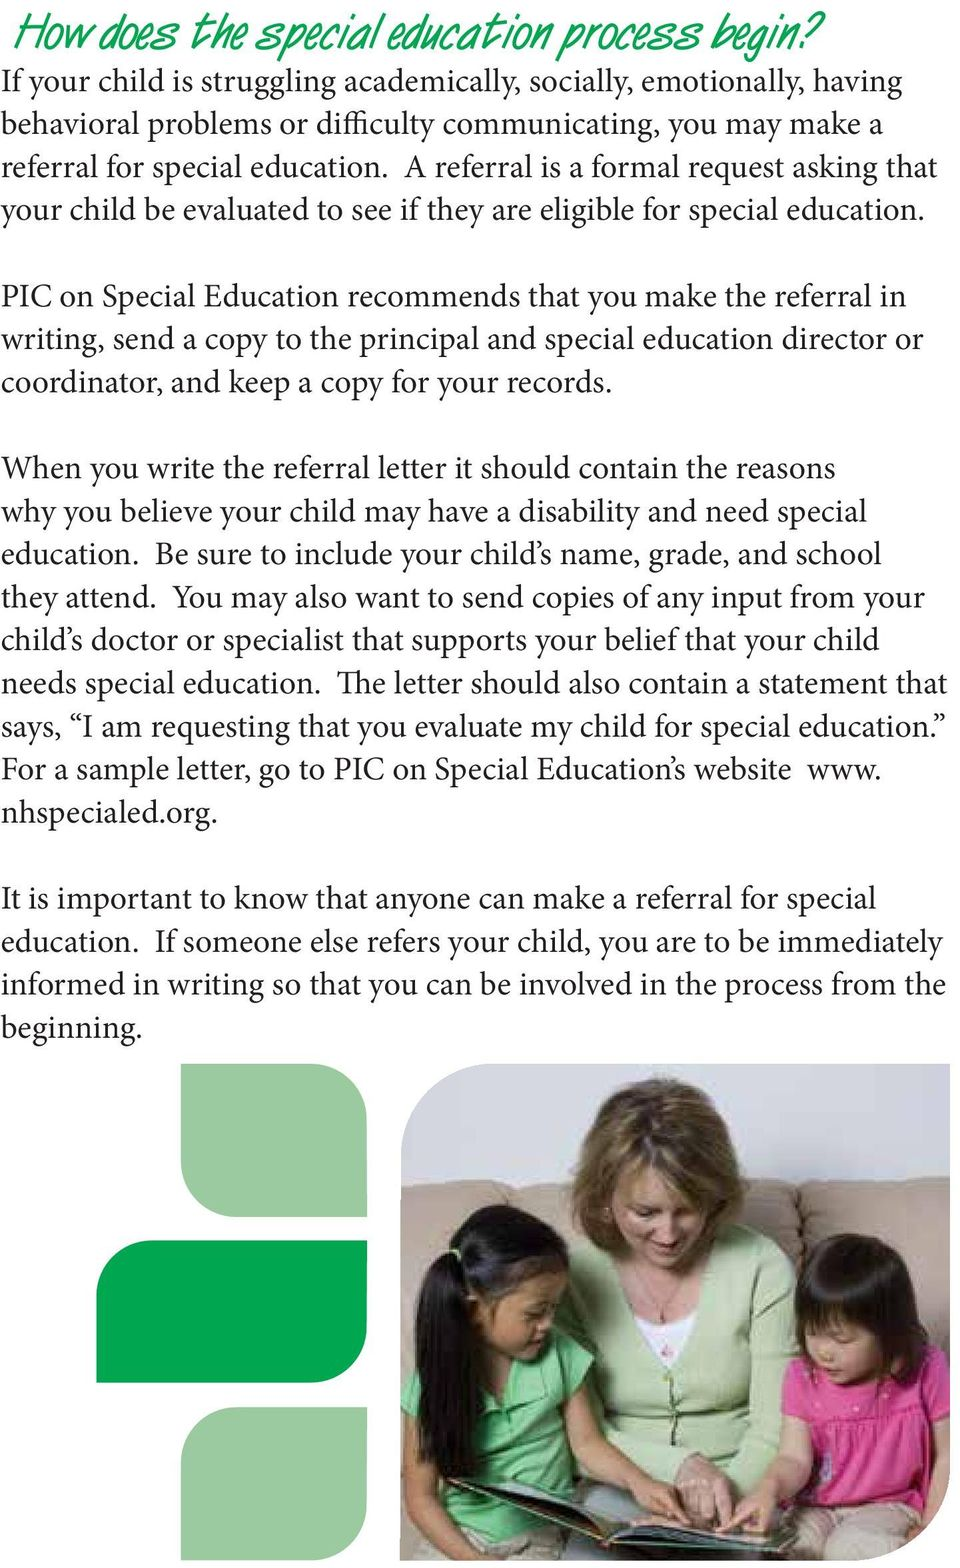 A referral is a formal request asking that your child be evaluated to see if they are eligible for special education.